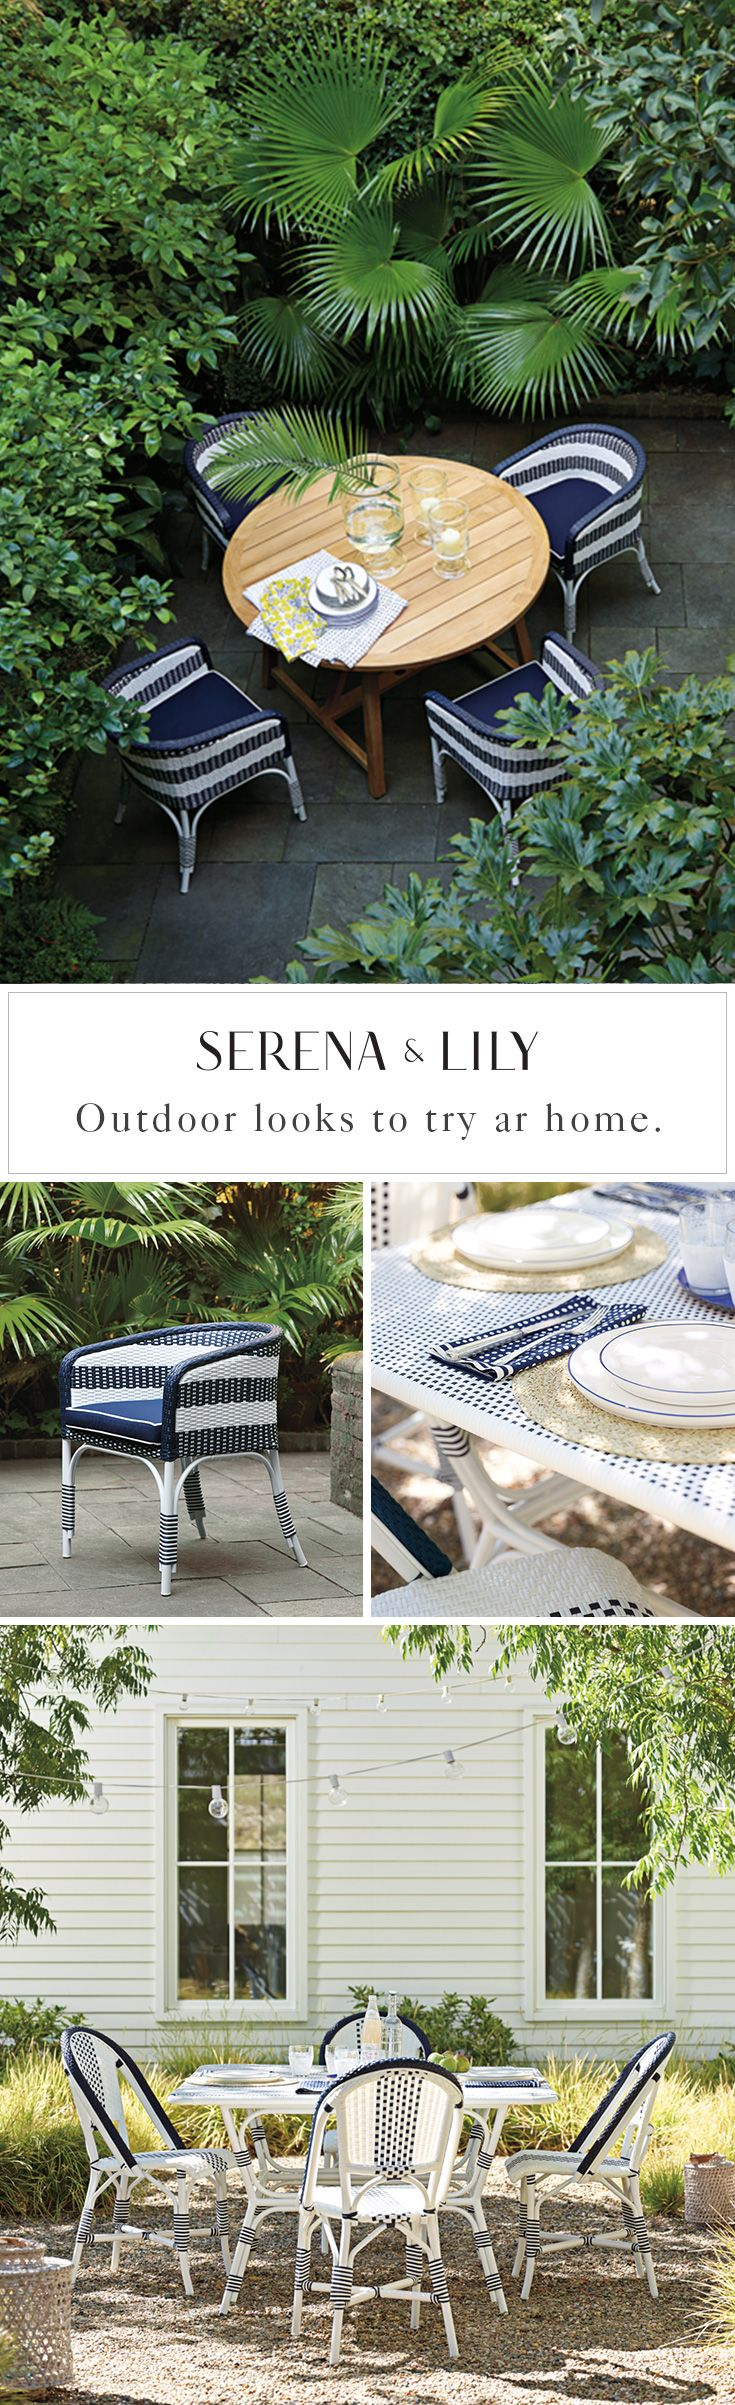 Our new outdoor French bistro chair collection will transport you to the French Riviera. Find your favorite today and bring la belle vie home.